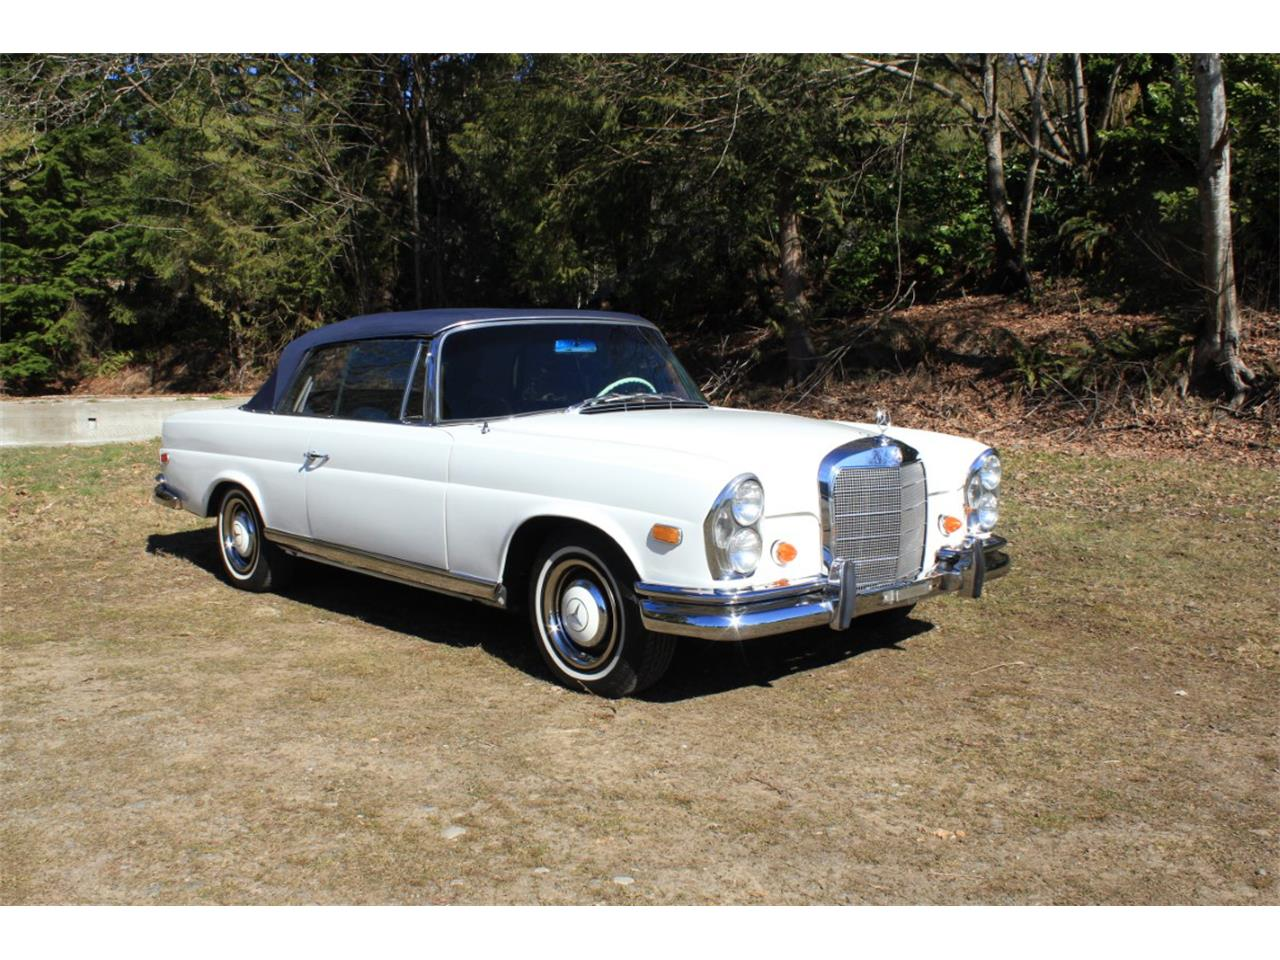 1966 mercedes benz 250se for sale in tacoma wa classiccarsbay com classiccarsbay